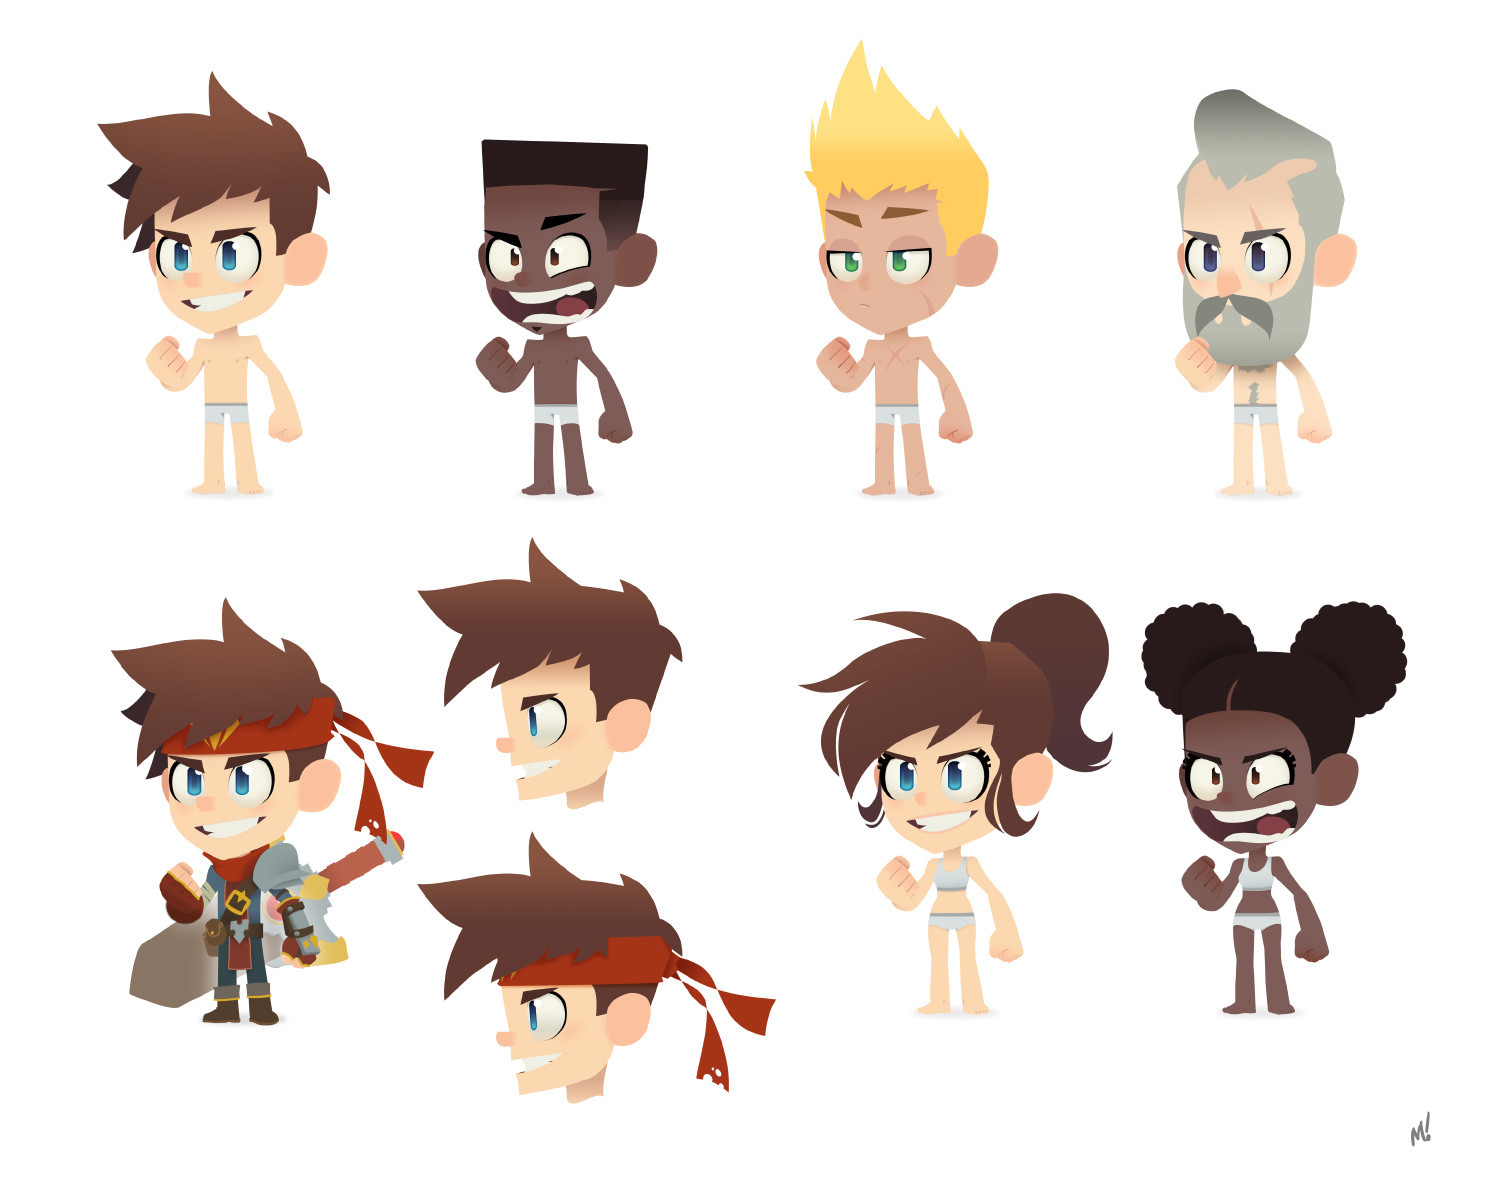 Continuation of a character creation system if all players were humans. Just one body type for male and one for female sharing a rig due to constraints.